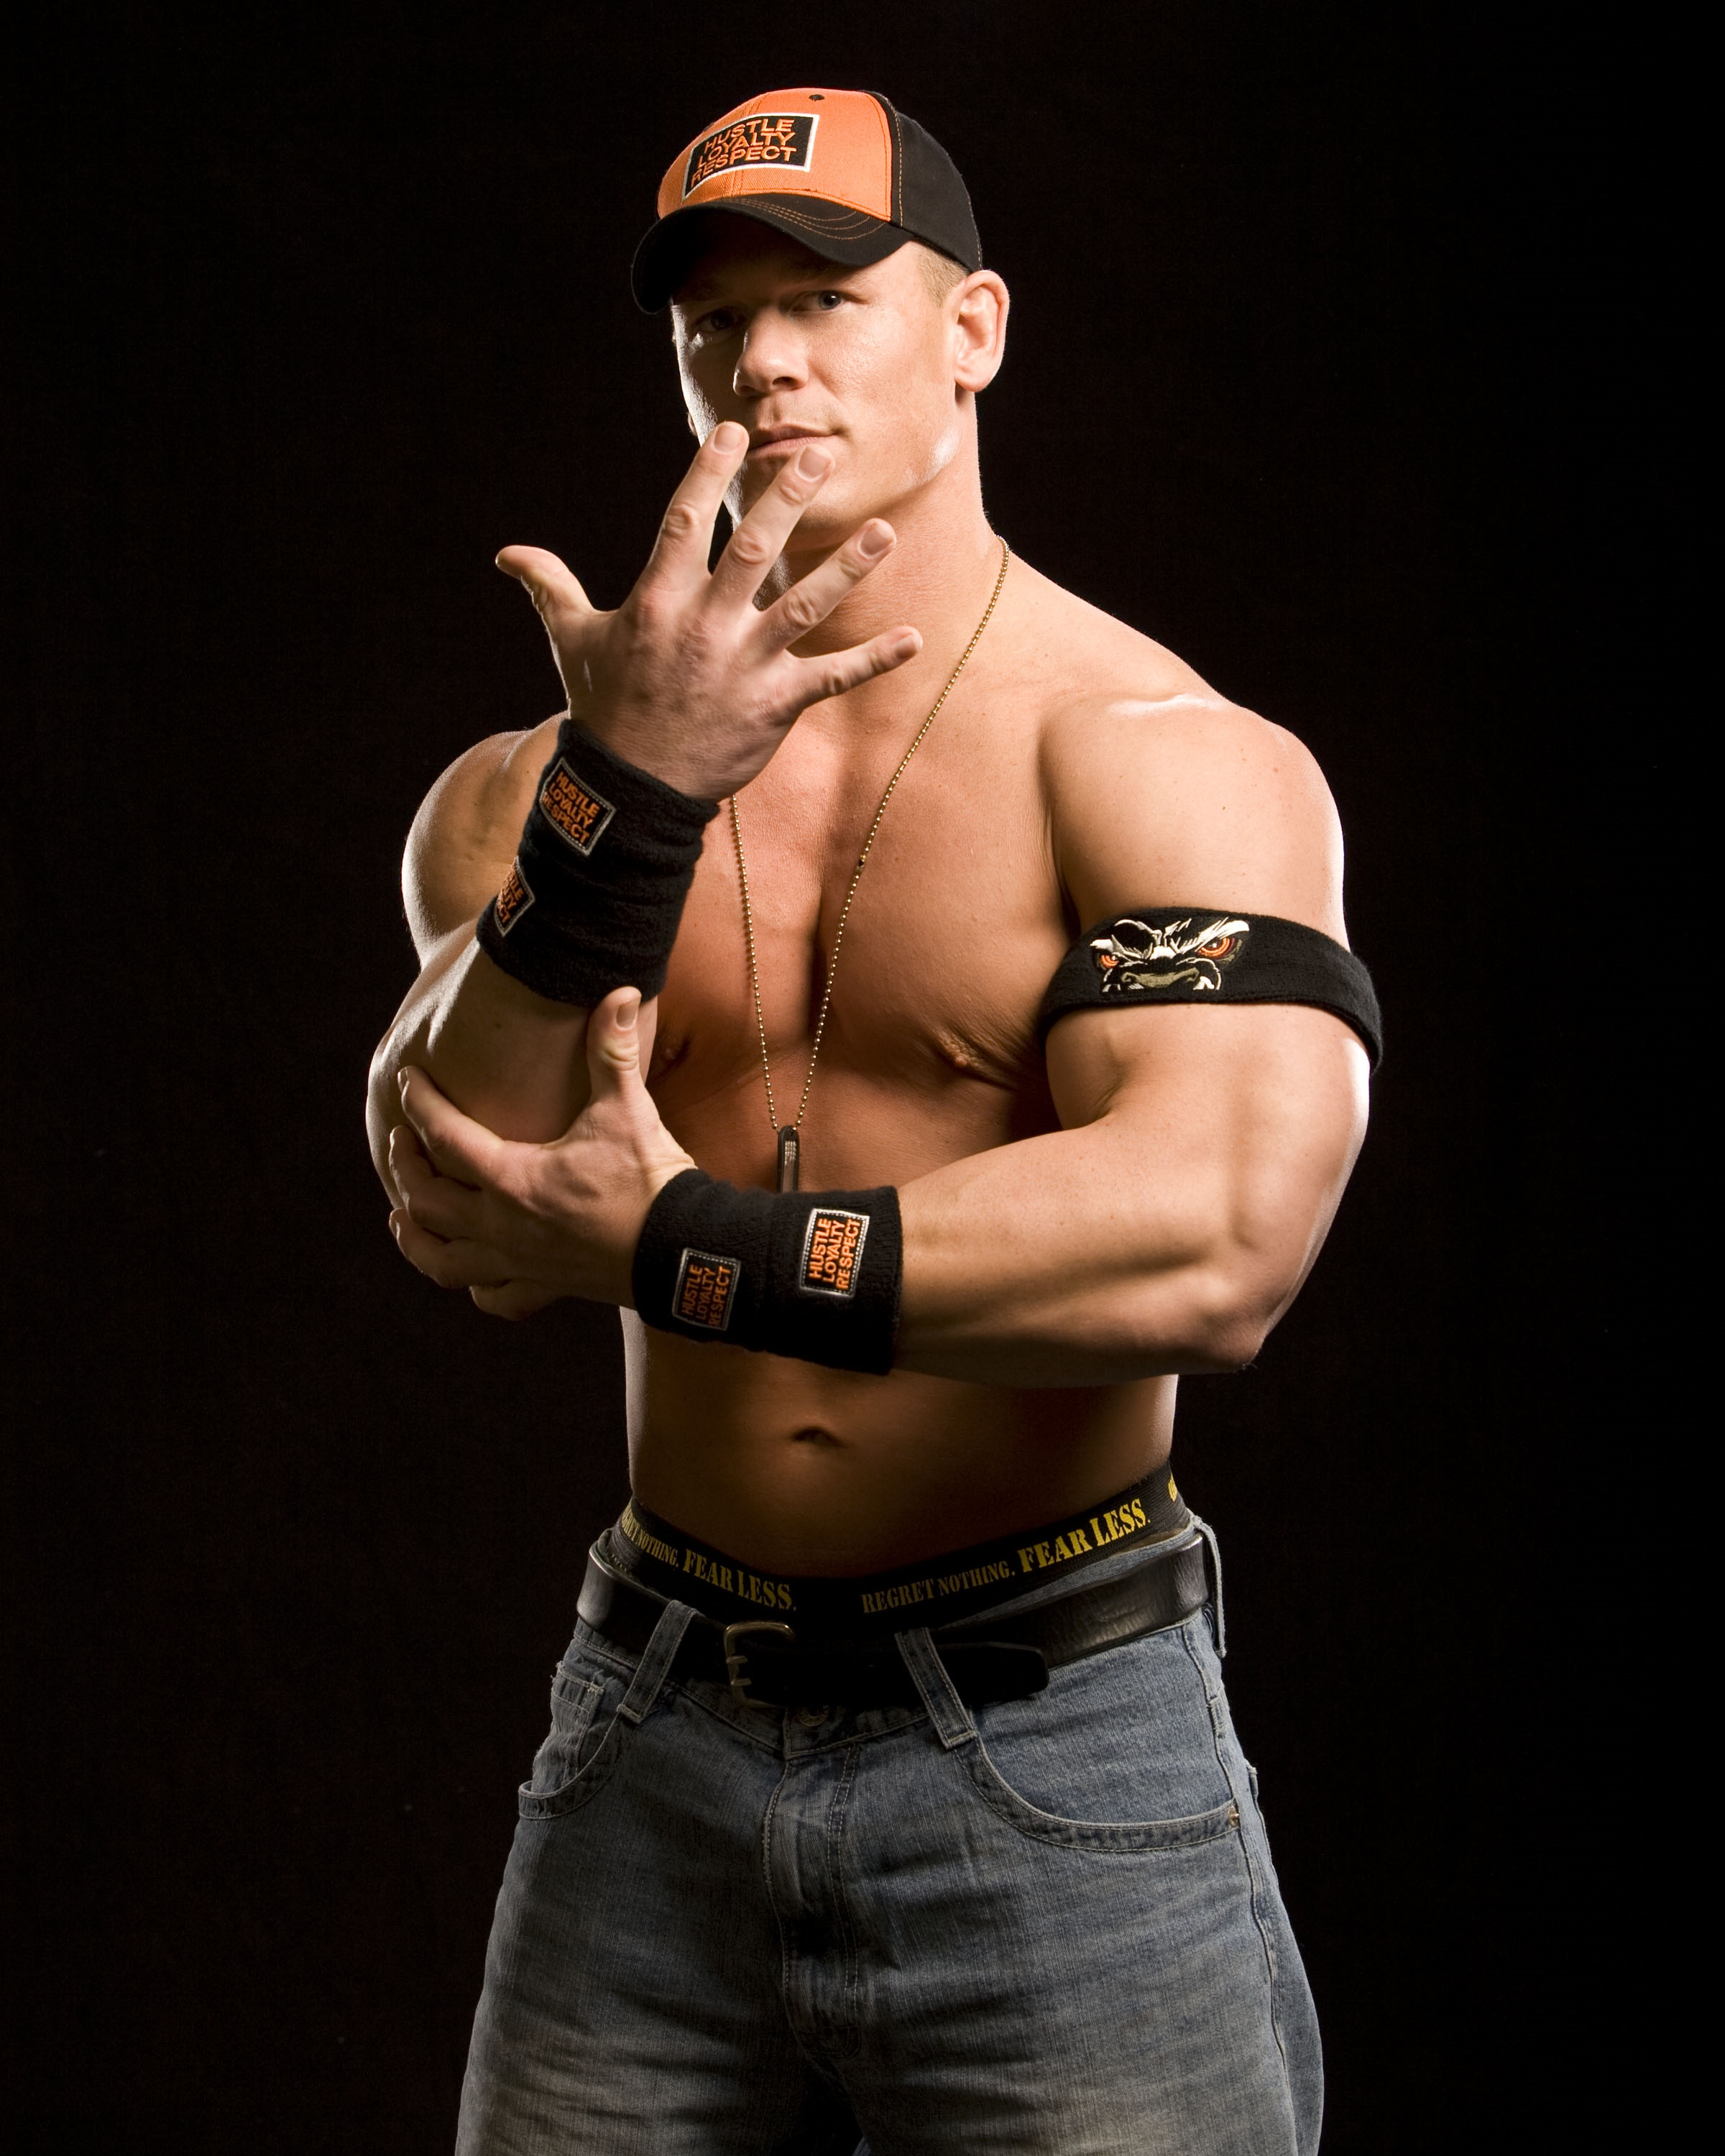 wwe raw superstar john cena